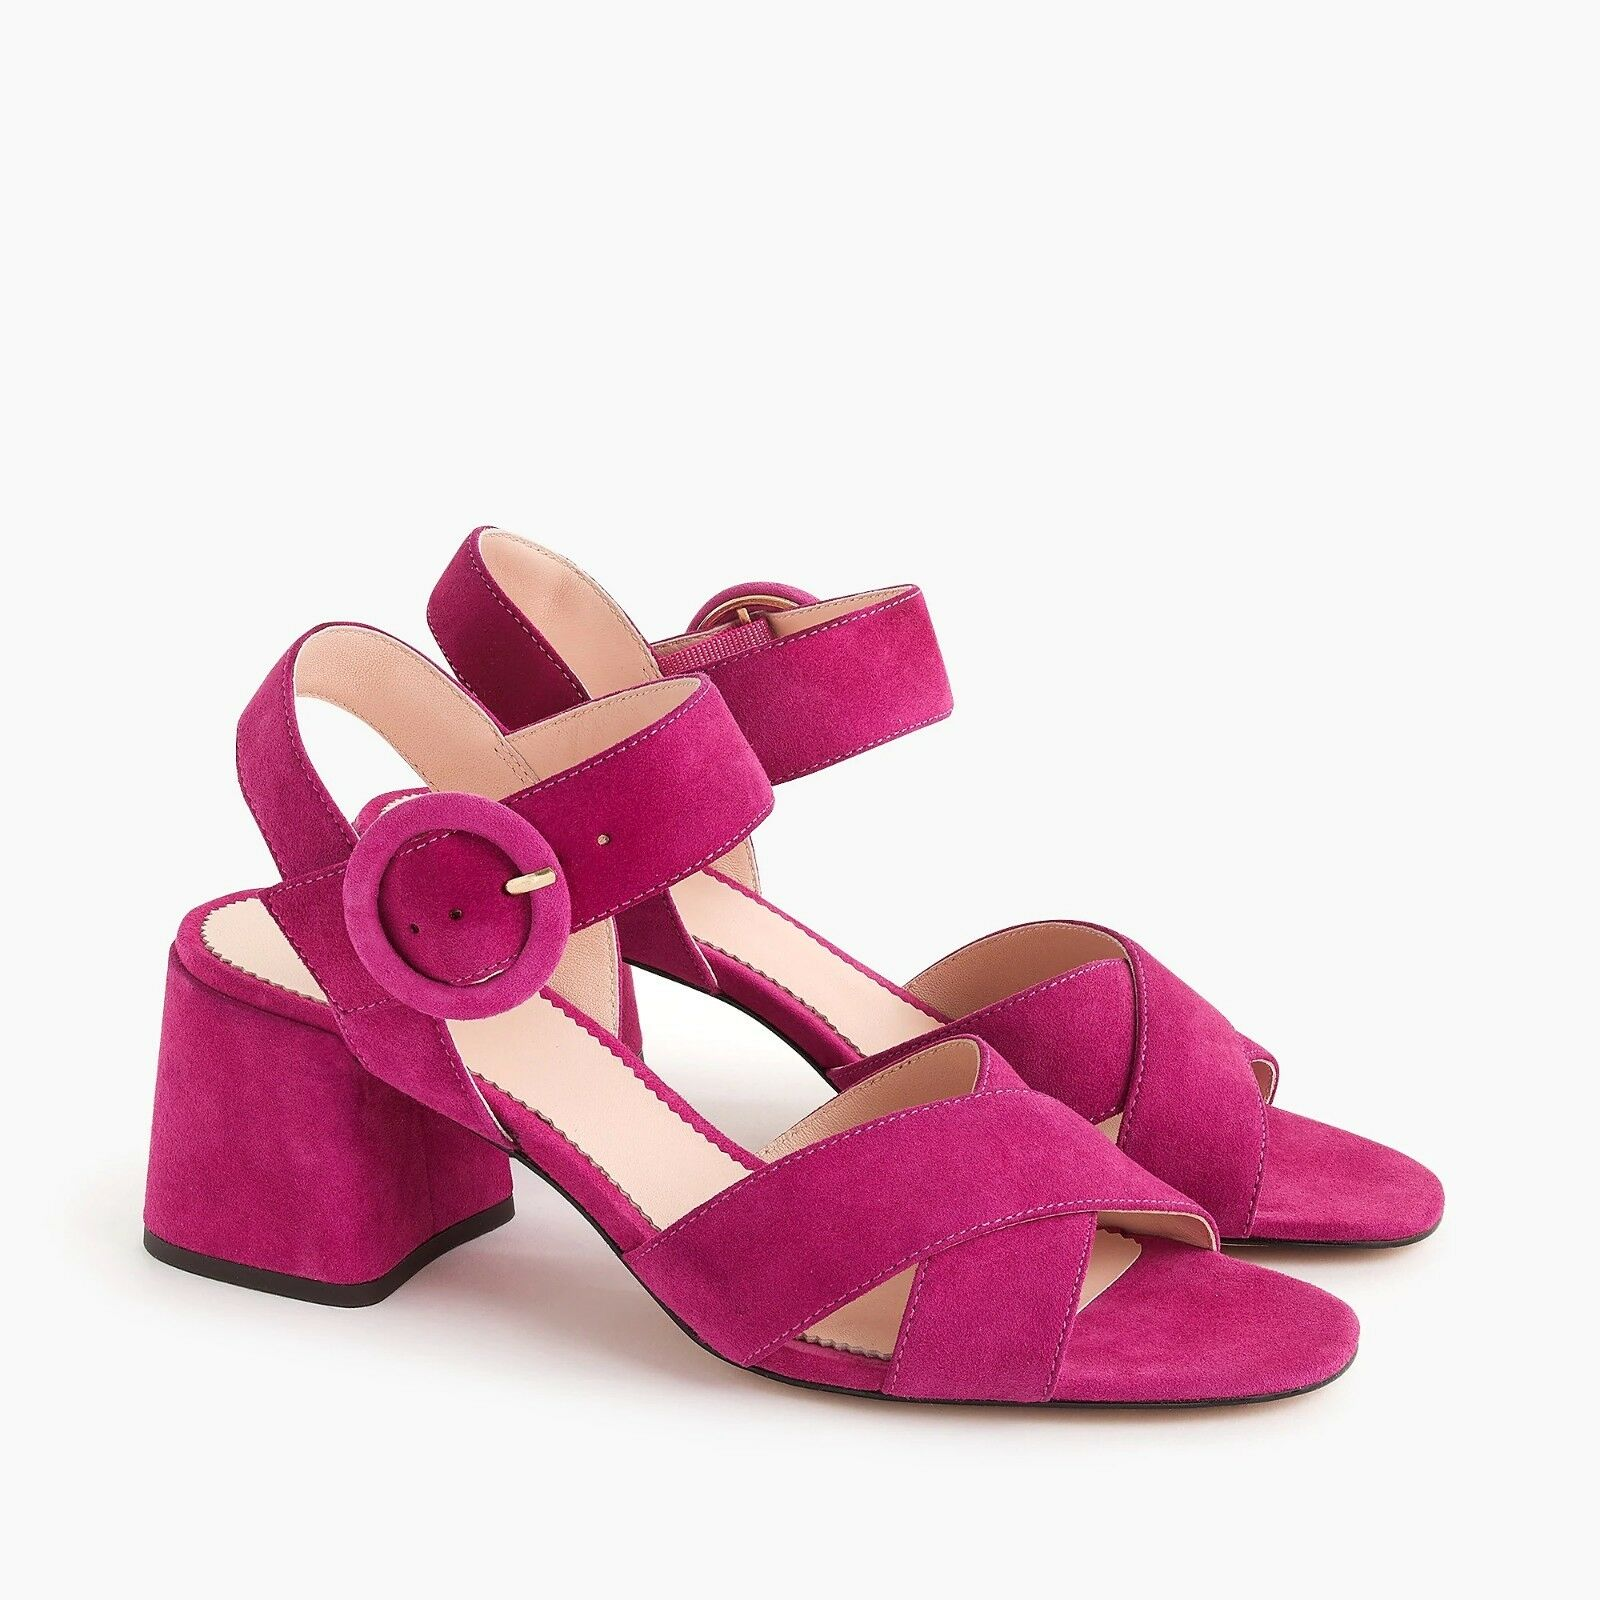 J. Crew Femme en Daim Penny Sandals-NEW IN BOX-Crisp Berry Rose-Taille 8.5